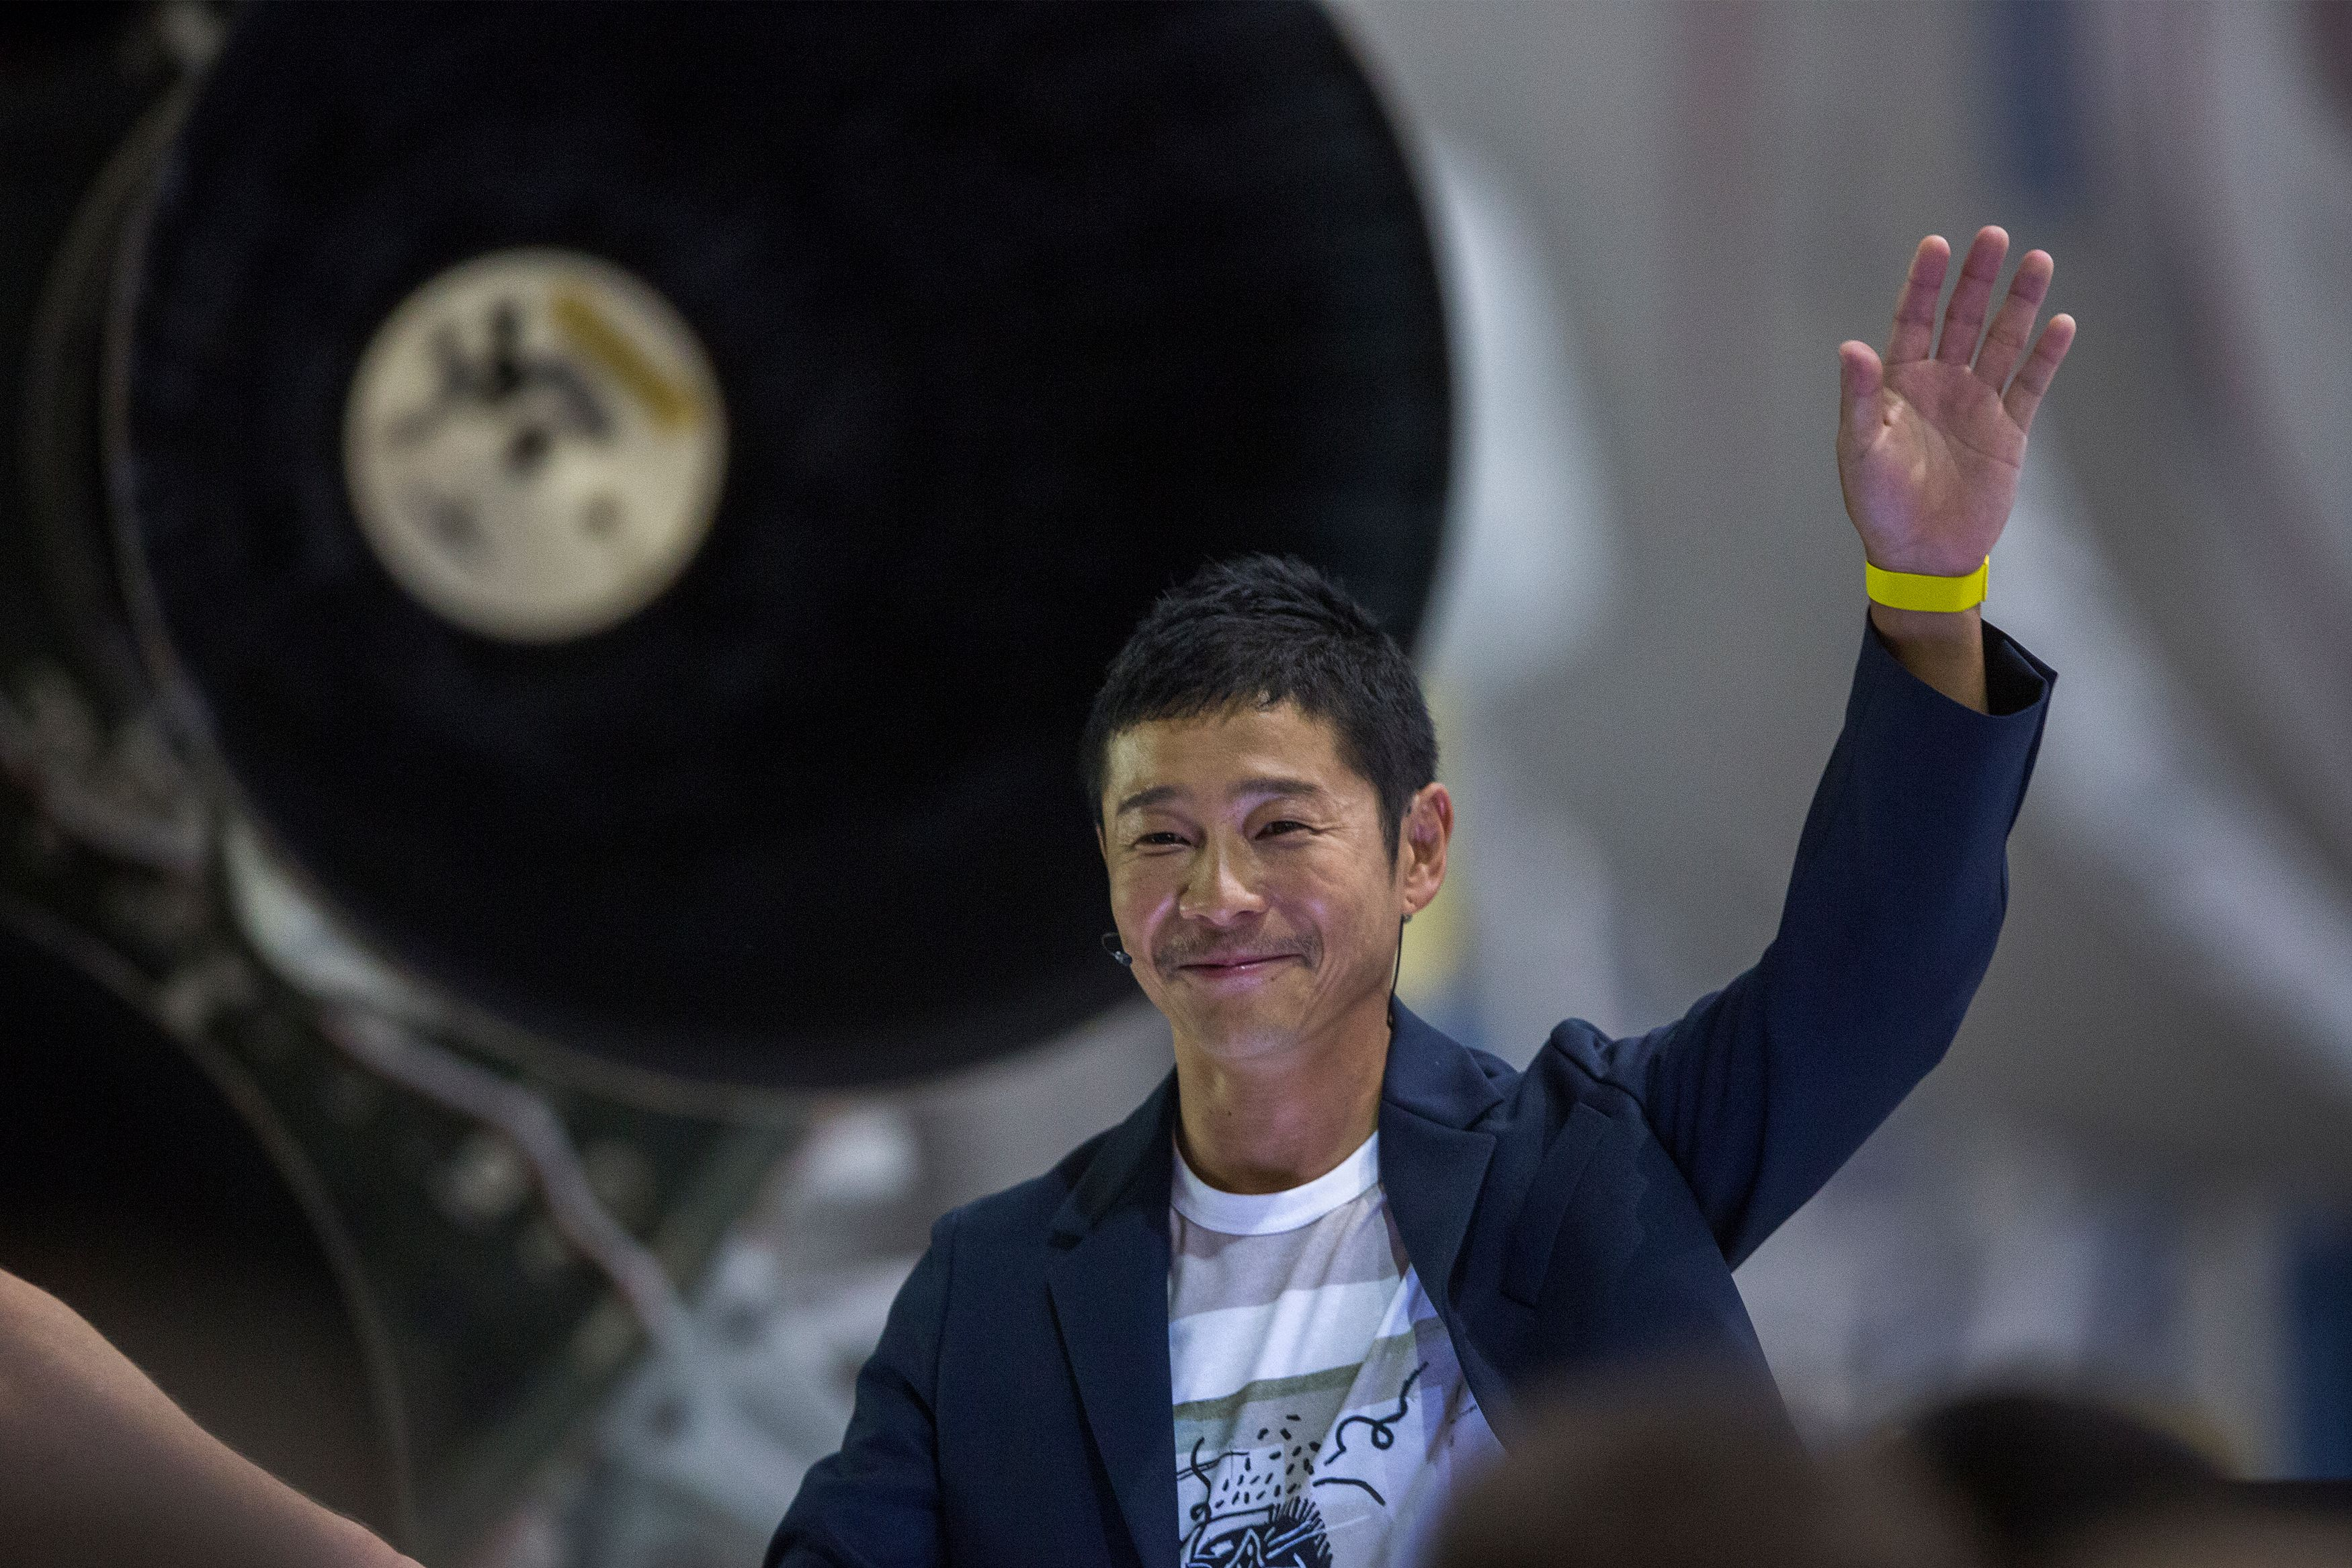 Japanese billionaire Yusaku Maezawa speaks near a Falcon 9 rocket during the announcement by Elon Musk to be the first private passenger who will fly around the Moon aboard the SpaceX BFR launch vehicle, at the SpaceX headquarters and rocket factory on September 17, 2018 in Hawthorne, California.